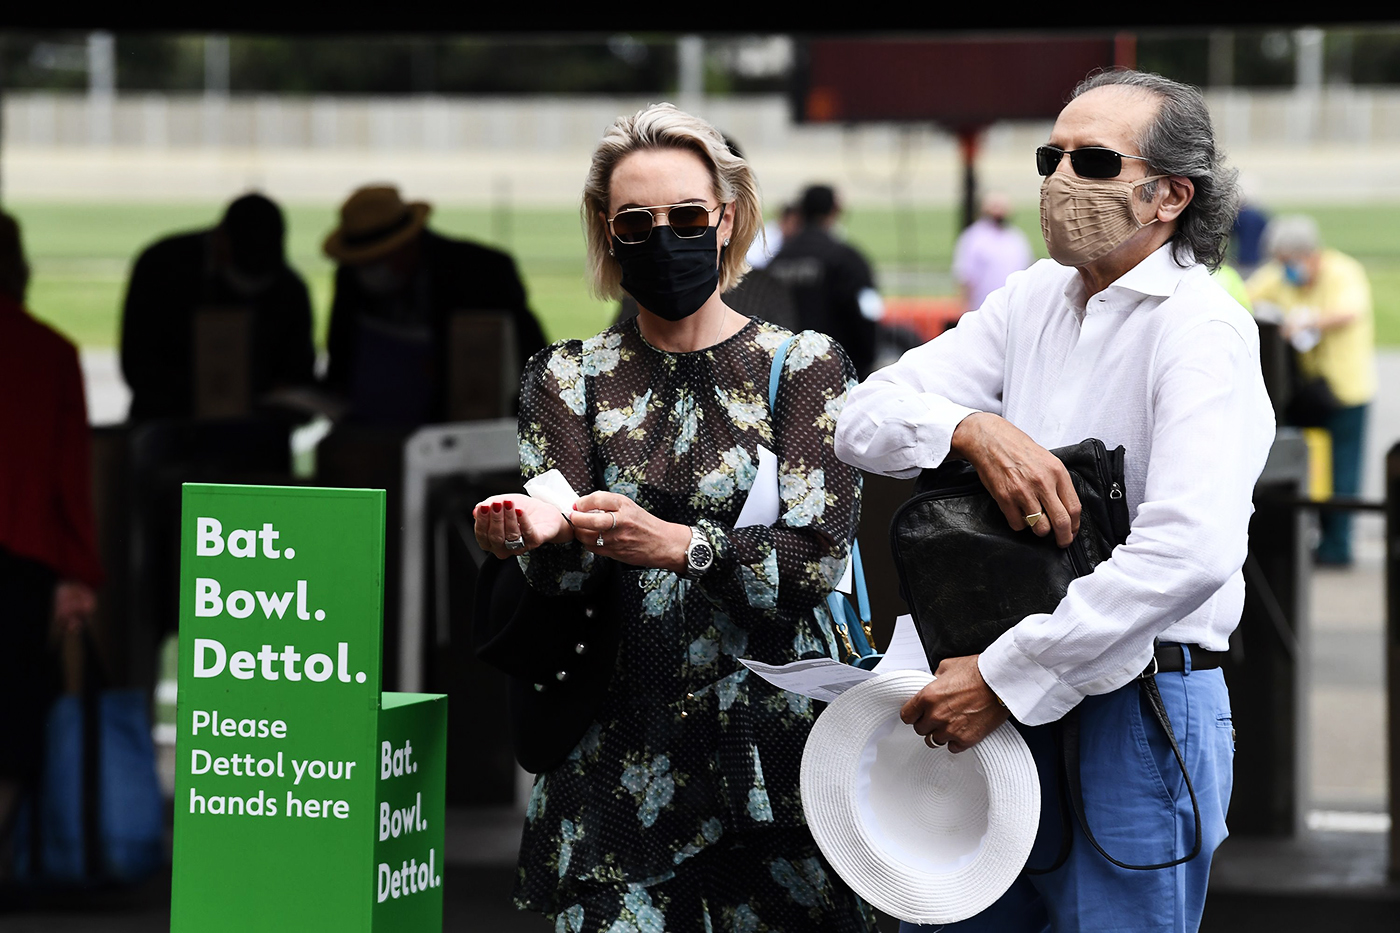 Spectators at the SCG make sure their hands are clean